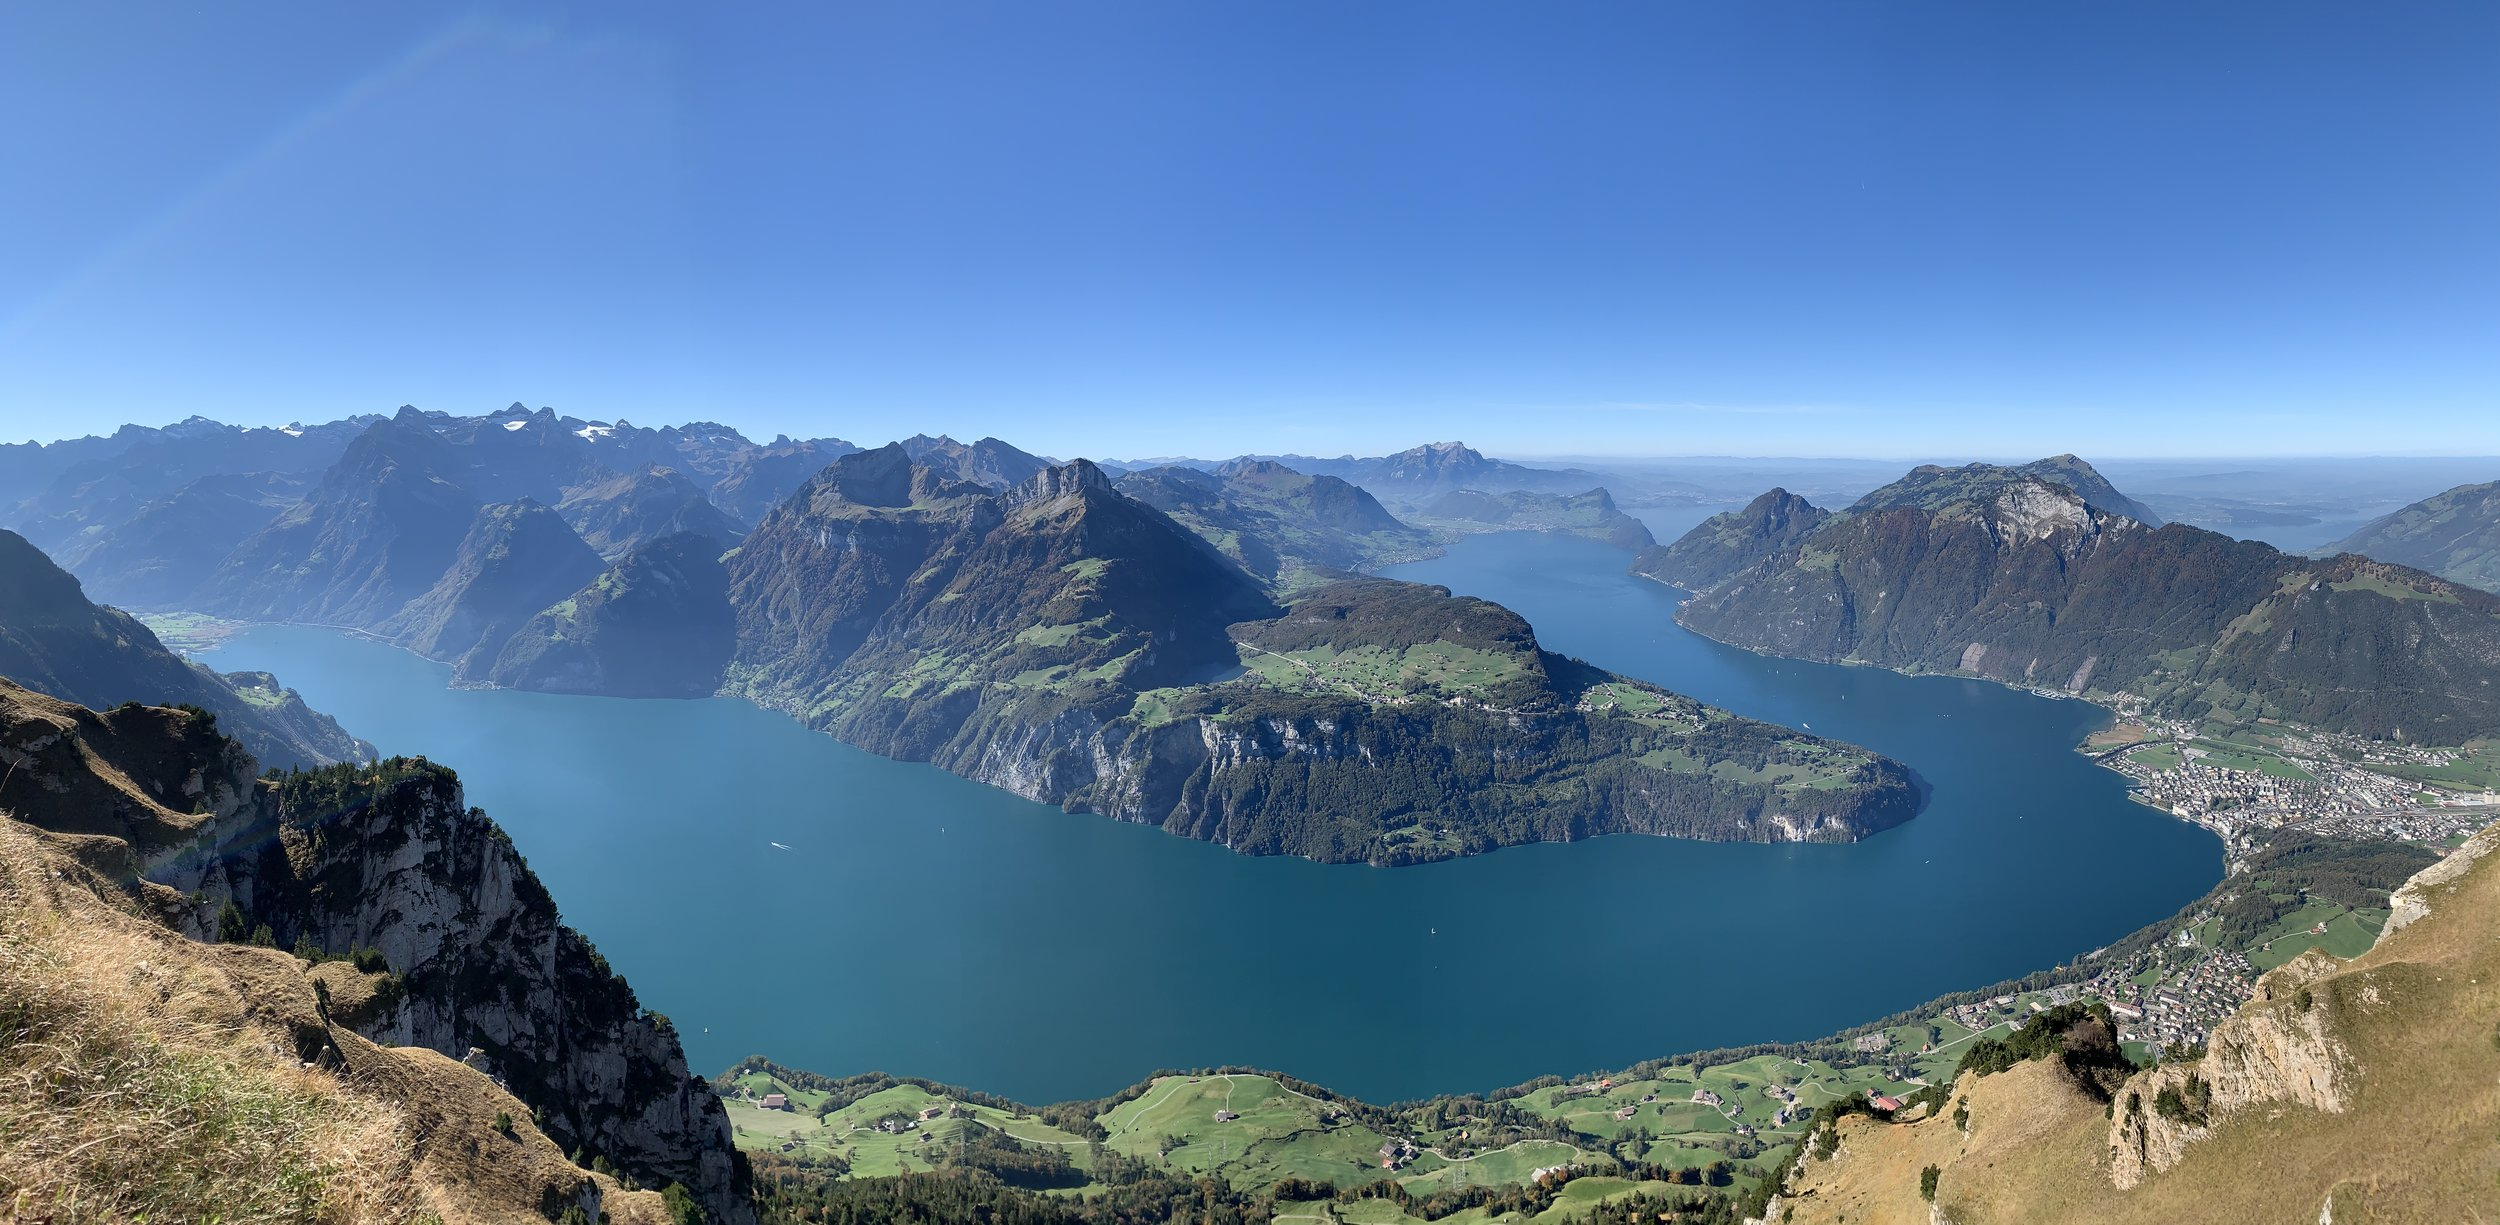 The view over the Lake of Lucerne from Stoos.